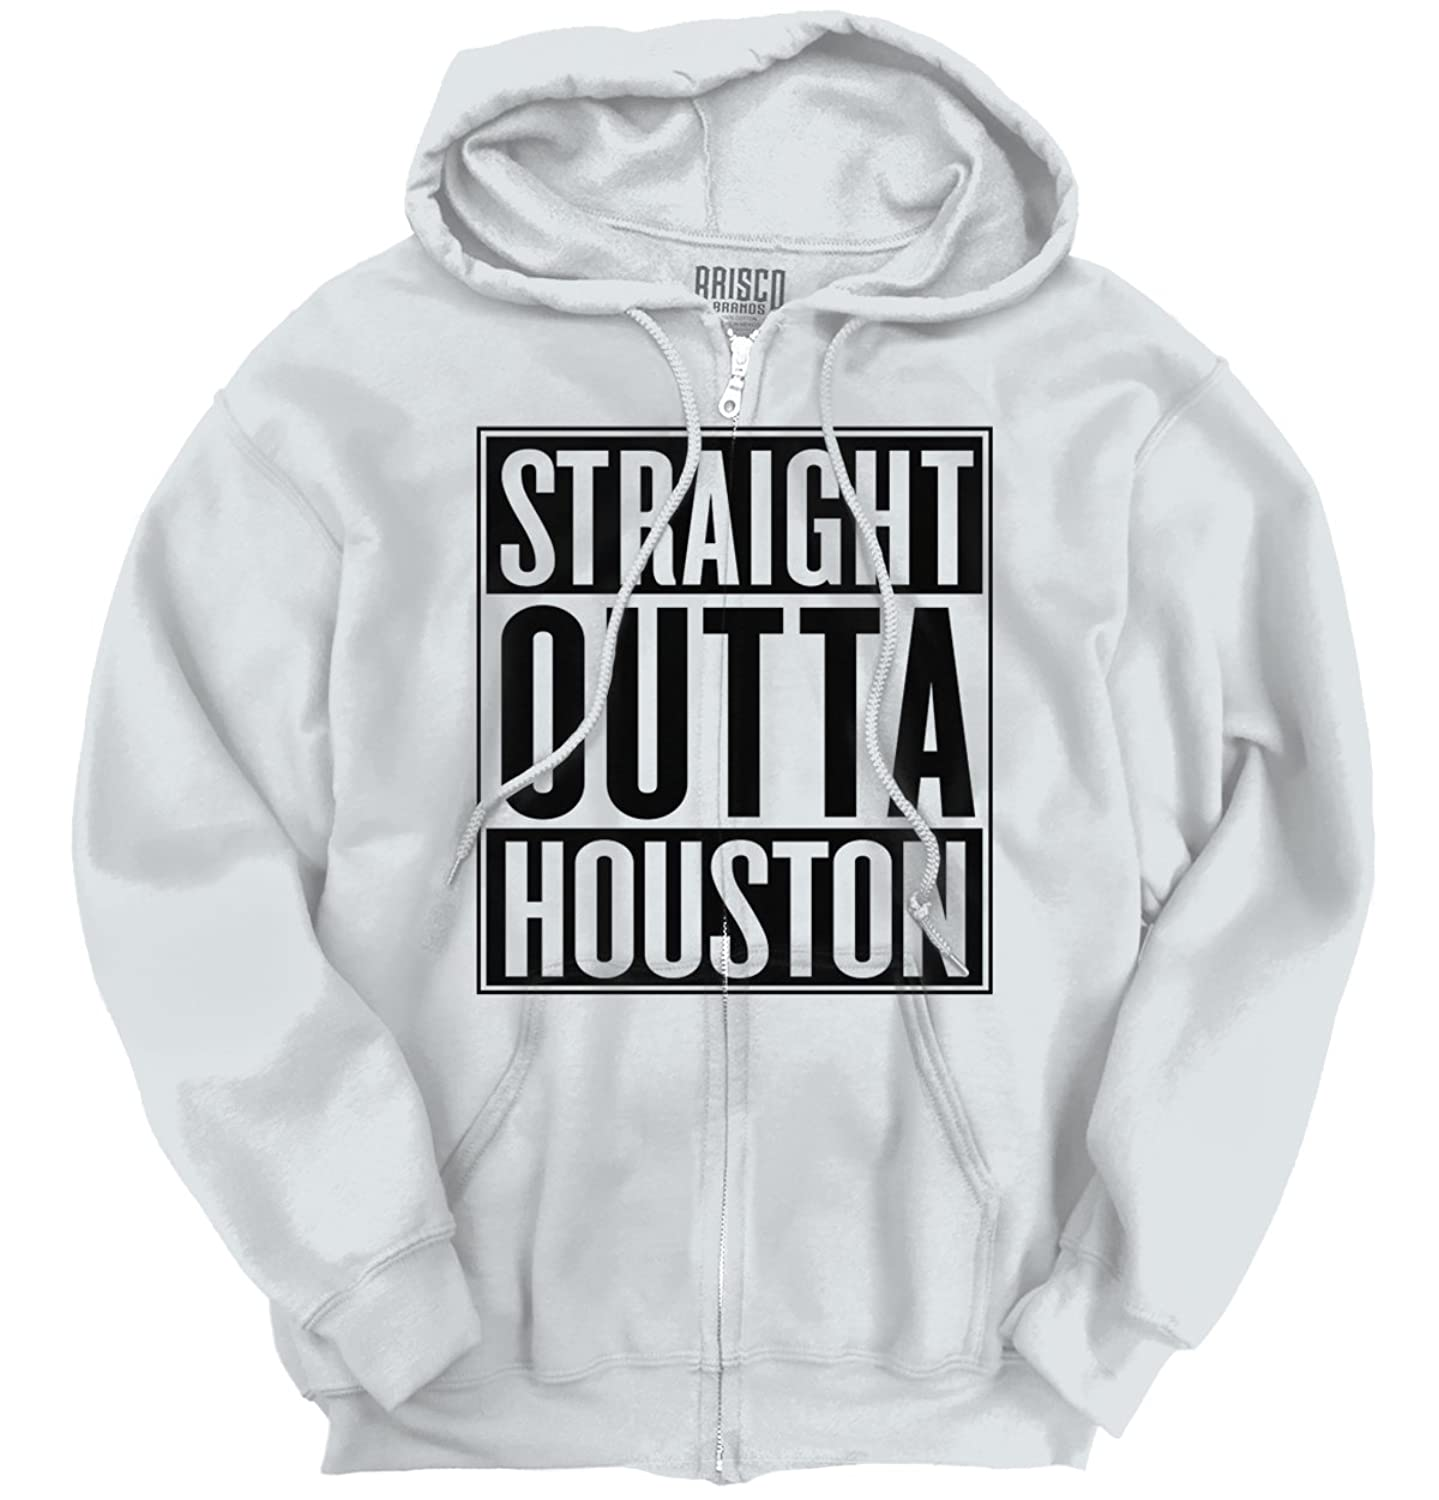 TX City Movie T Shirts Gift Ideas Hoodie Sweatshirt Straight Outta Houston